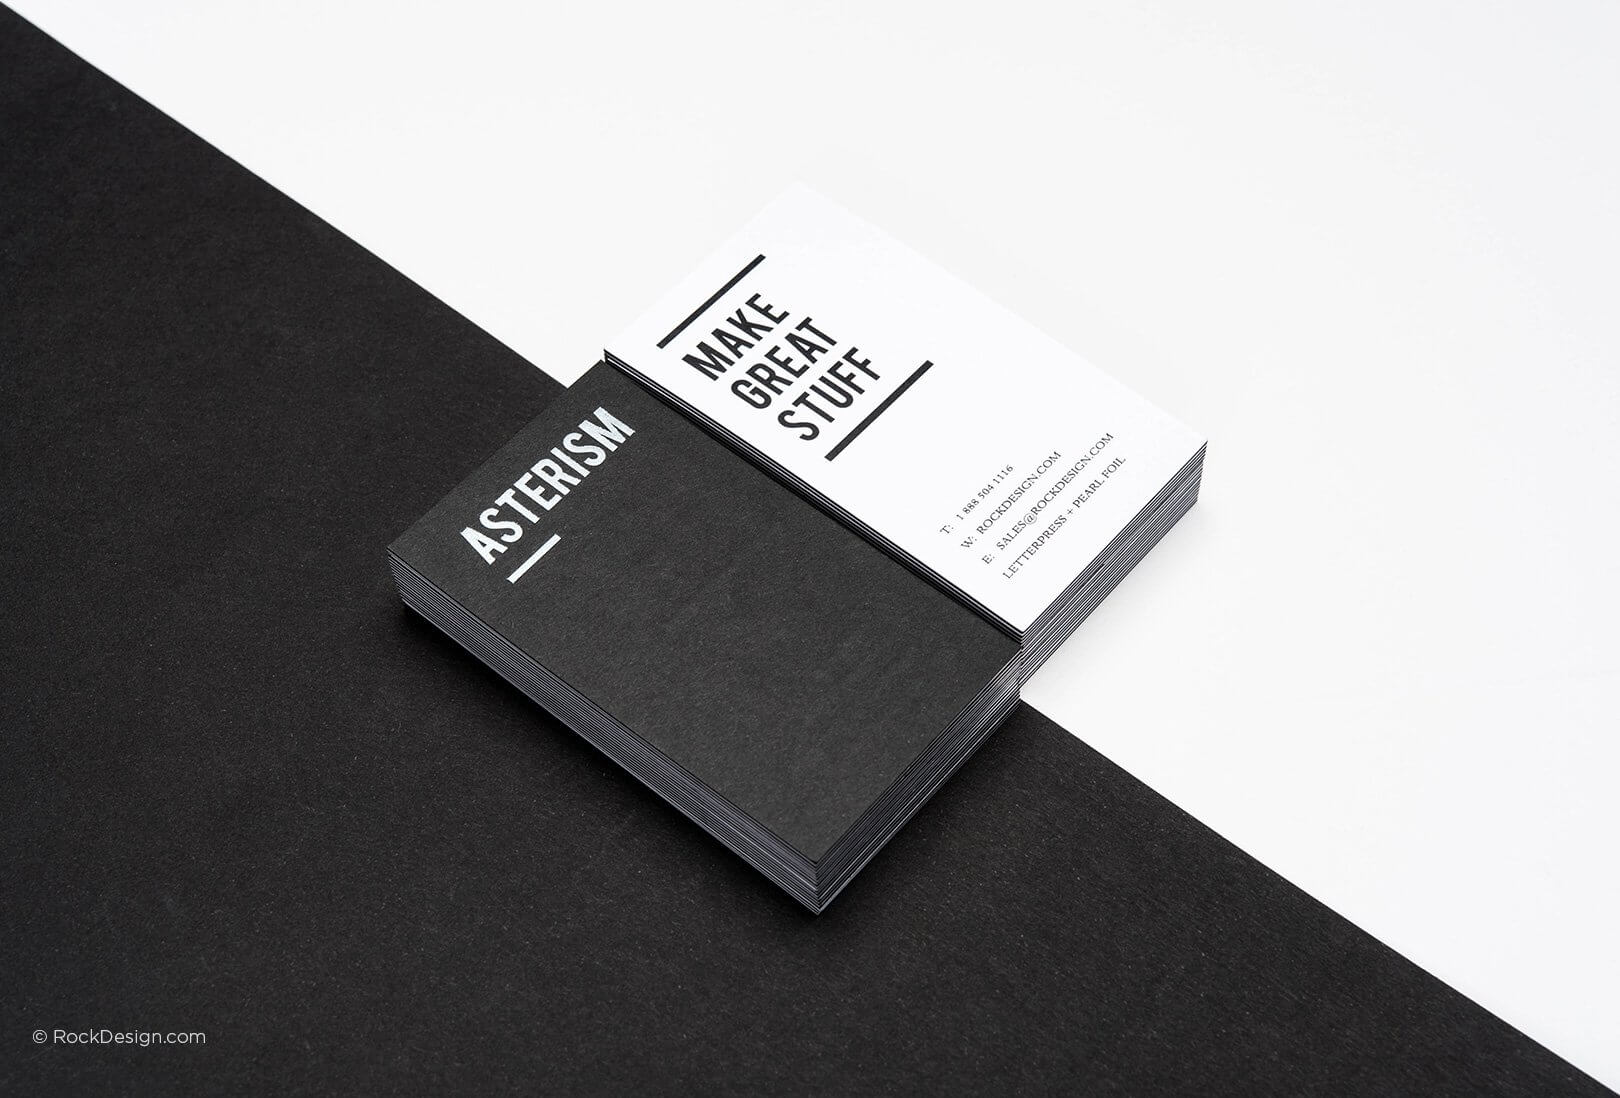 Free Black And White Business Card Templates | Rockdesign Throughout Black And White Business Cards Templates Free